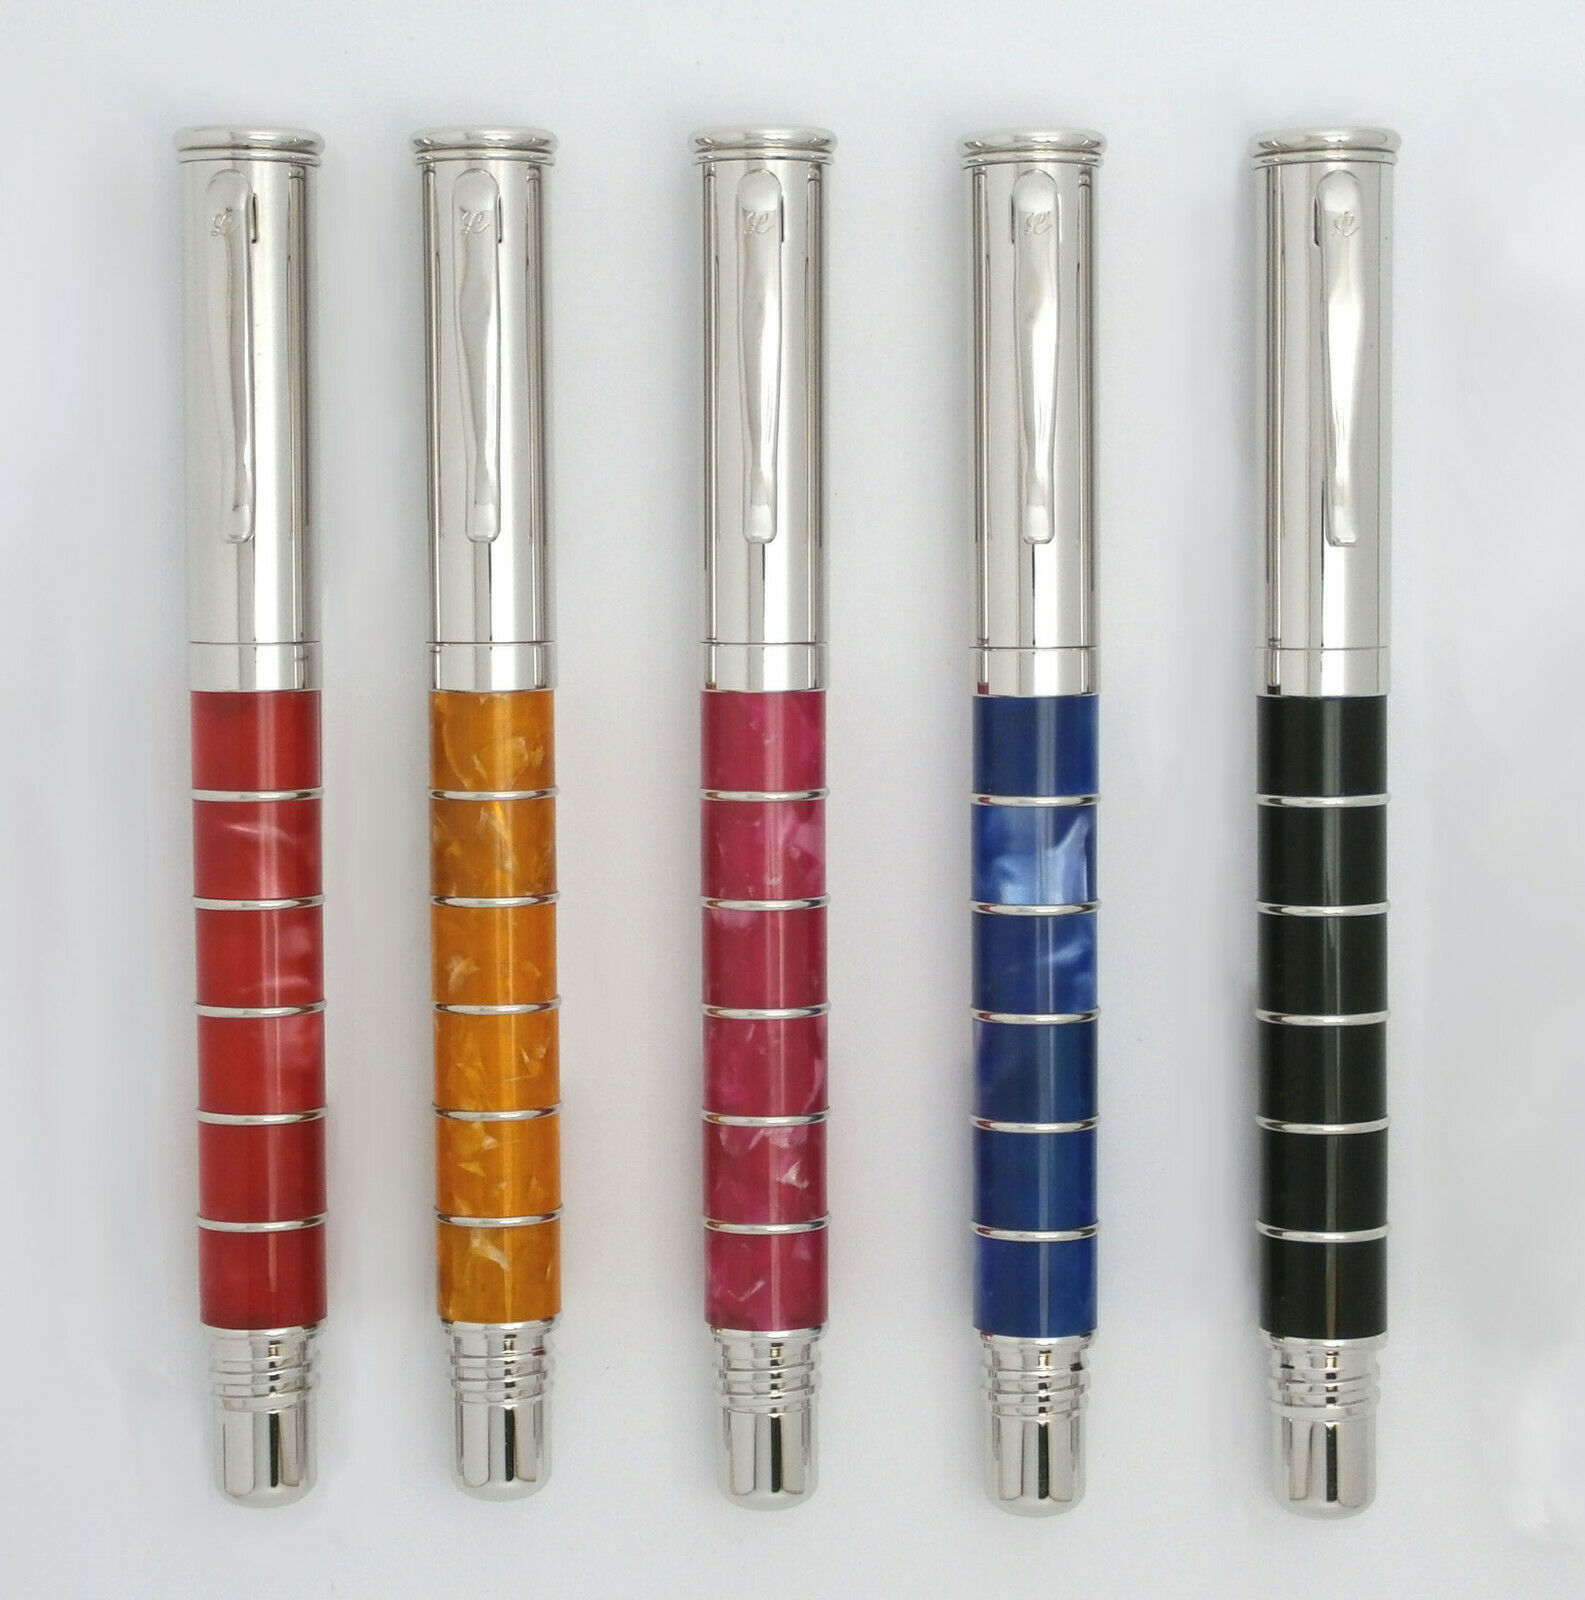 Primary image for Laban Ring Pen Rollerball + Free Gift Box, + 2 Refills, Free Shipping!